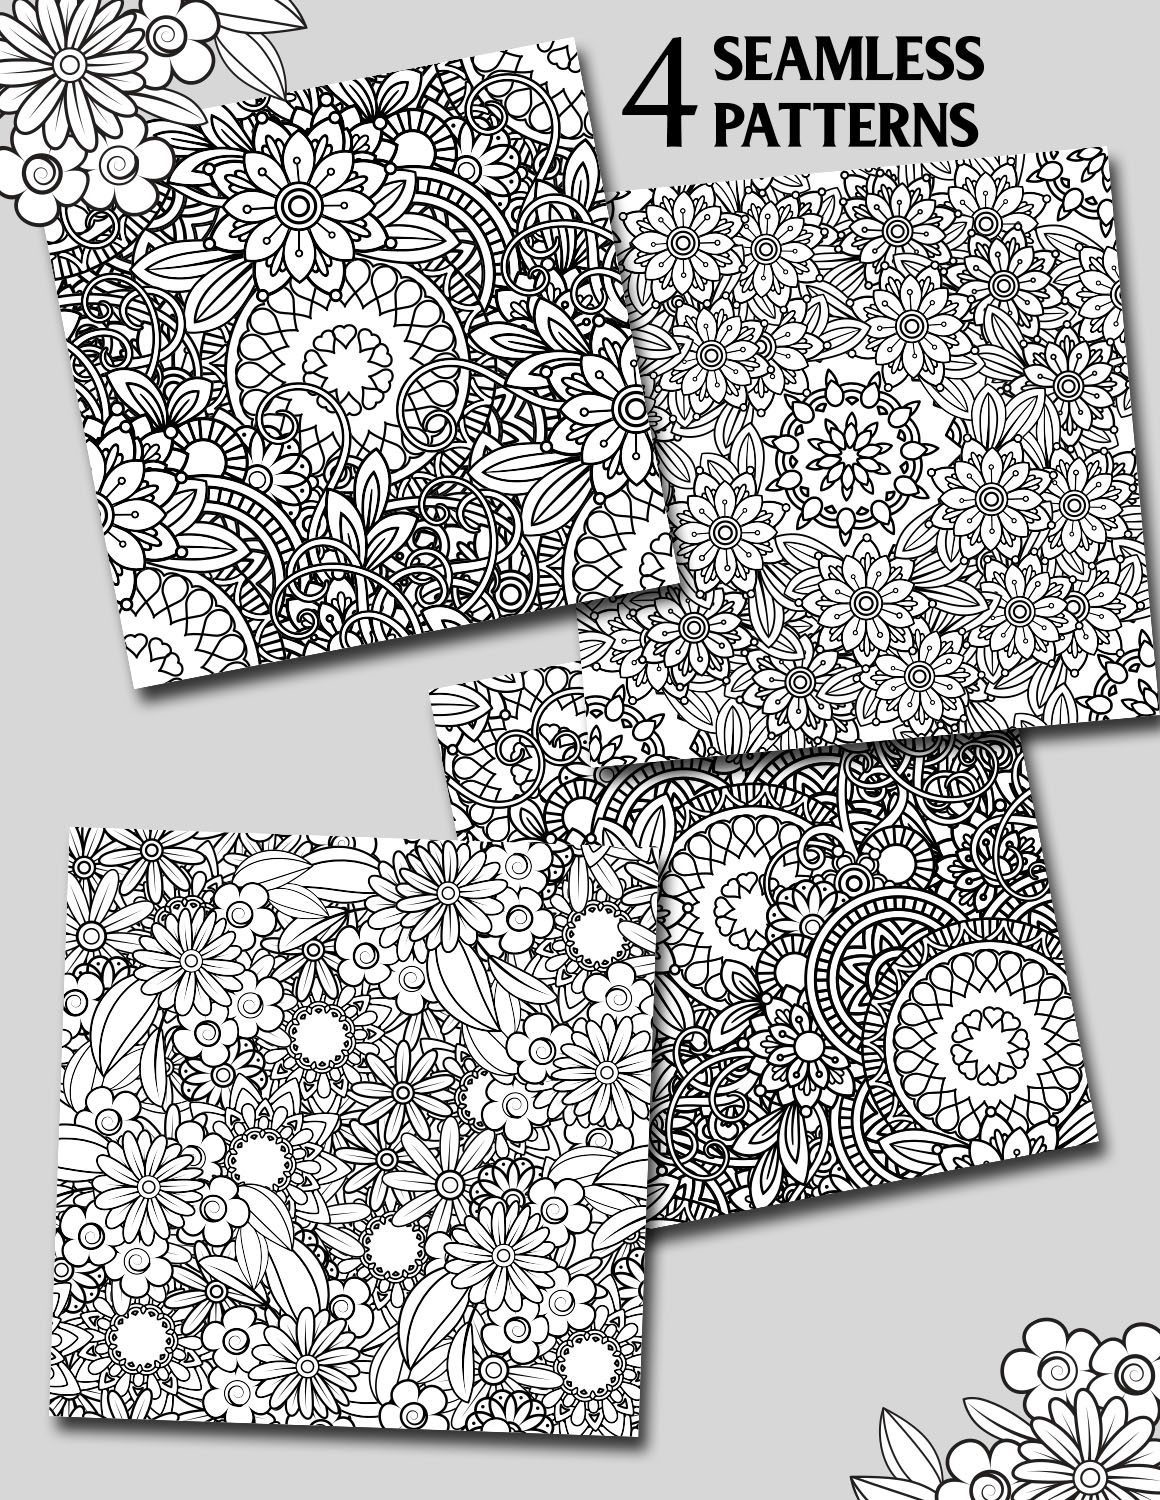 Floral Seamless Patterns example image 5